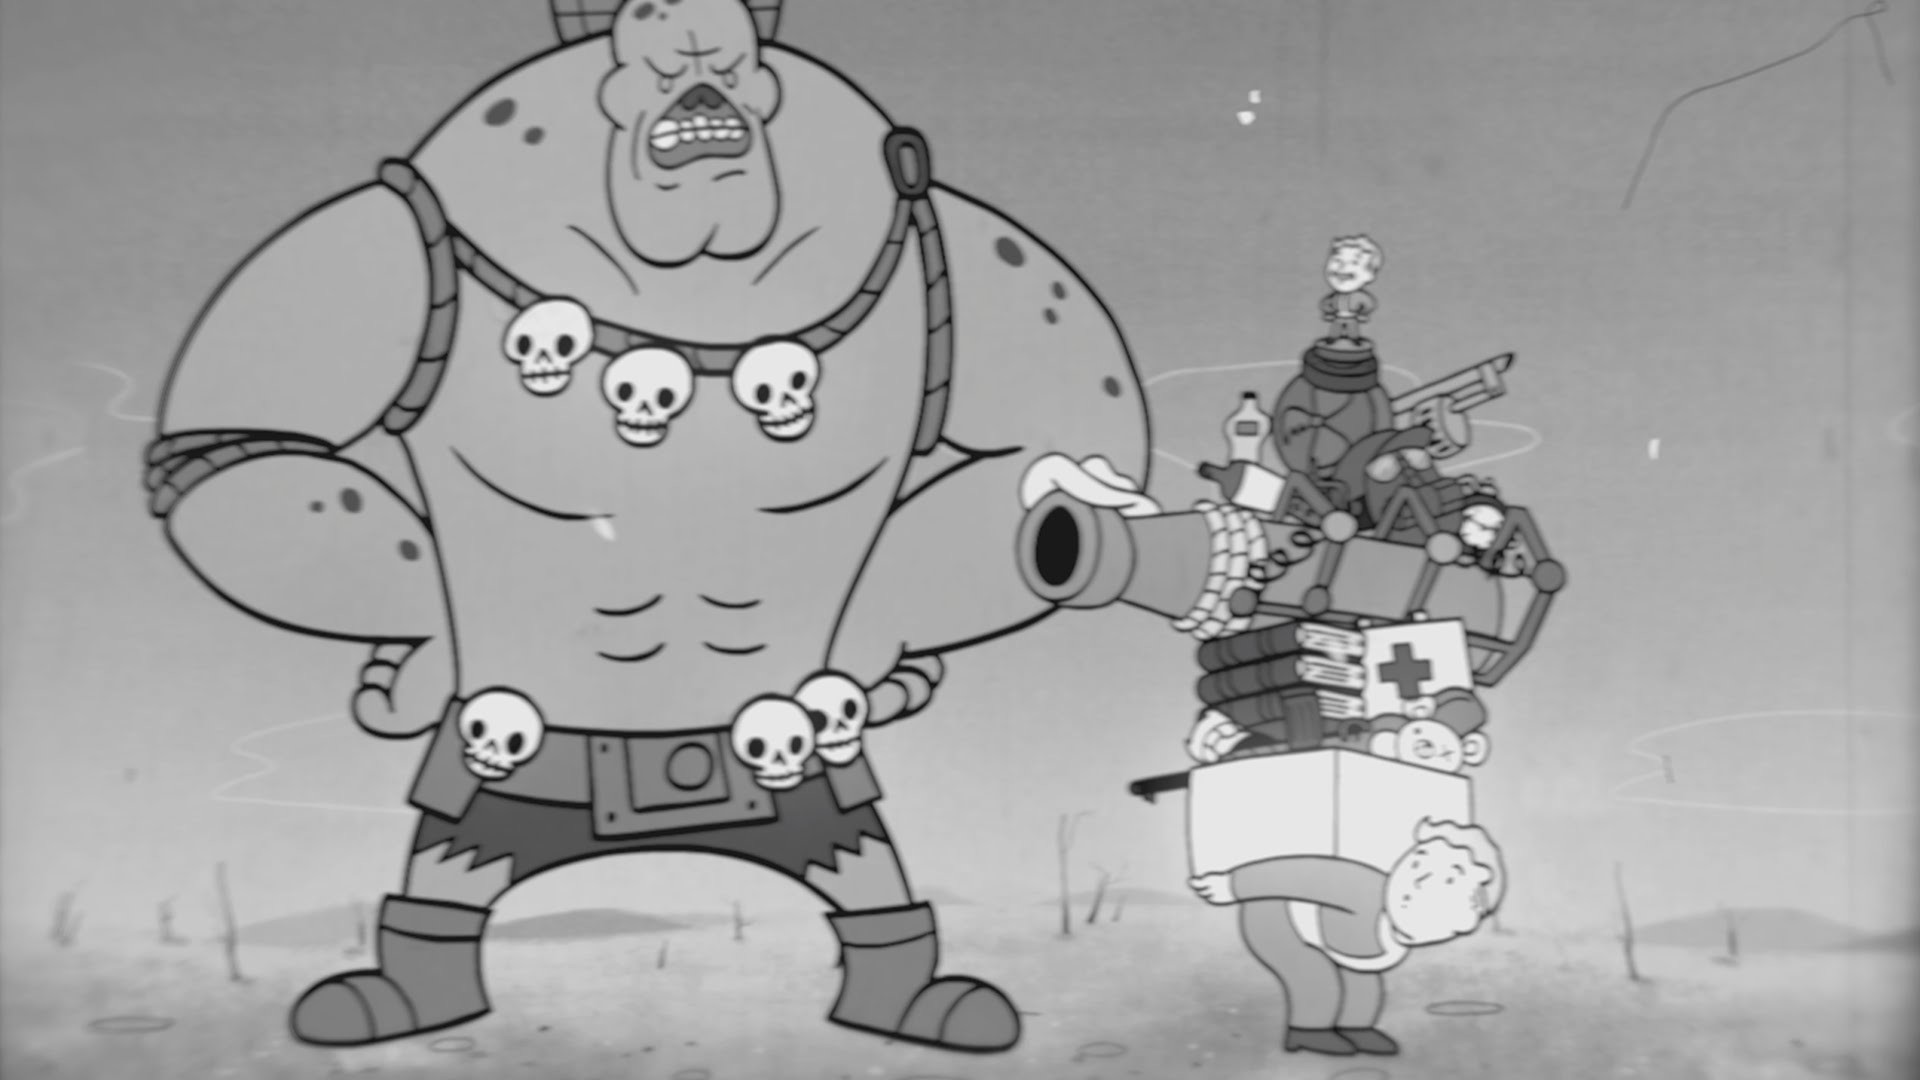 Motionographer Making cute 1950s-style animations for a cruel,  post-apocalyptic world